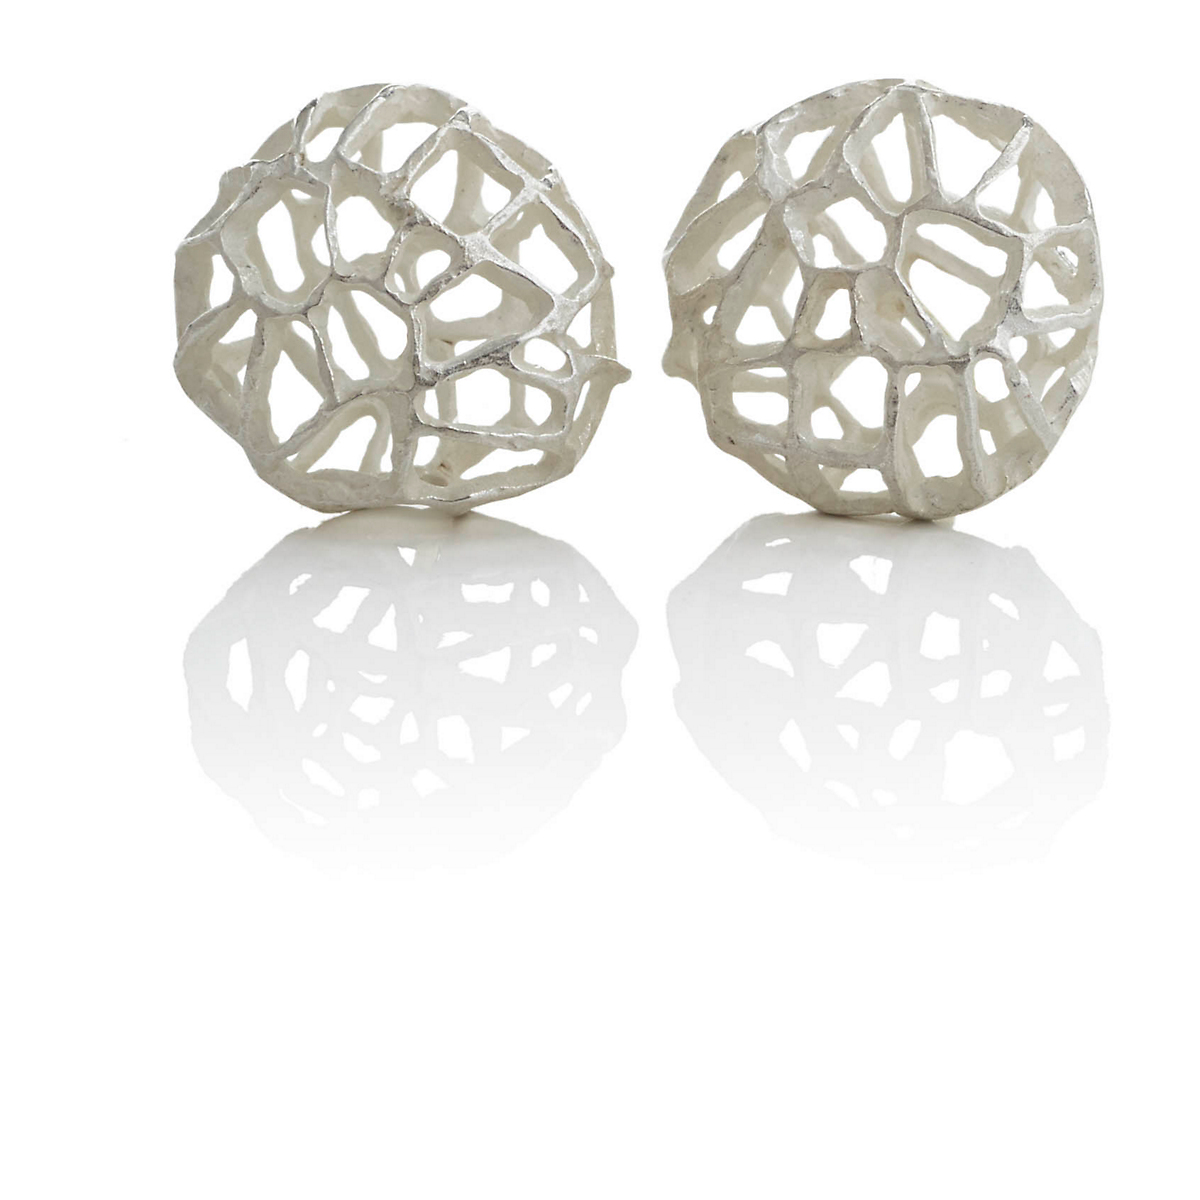 John Iversen Small Sterling Silver Korb Earrings